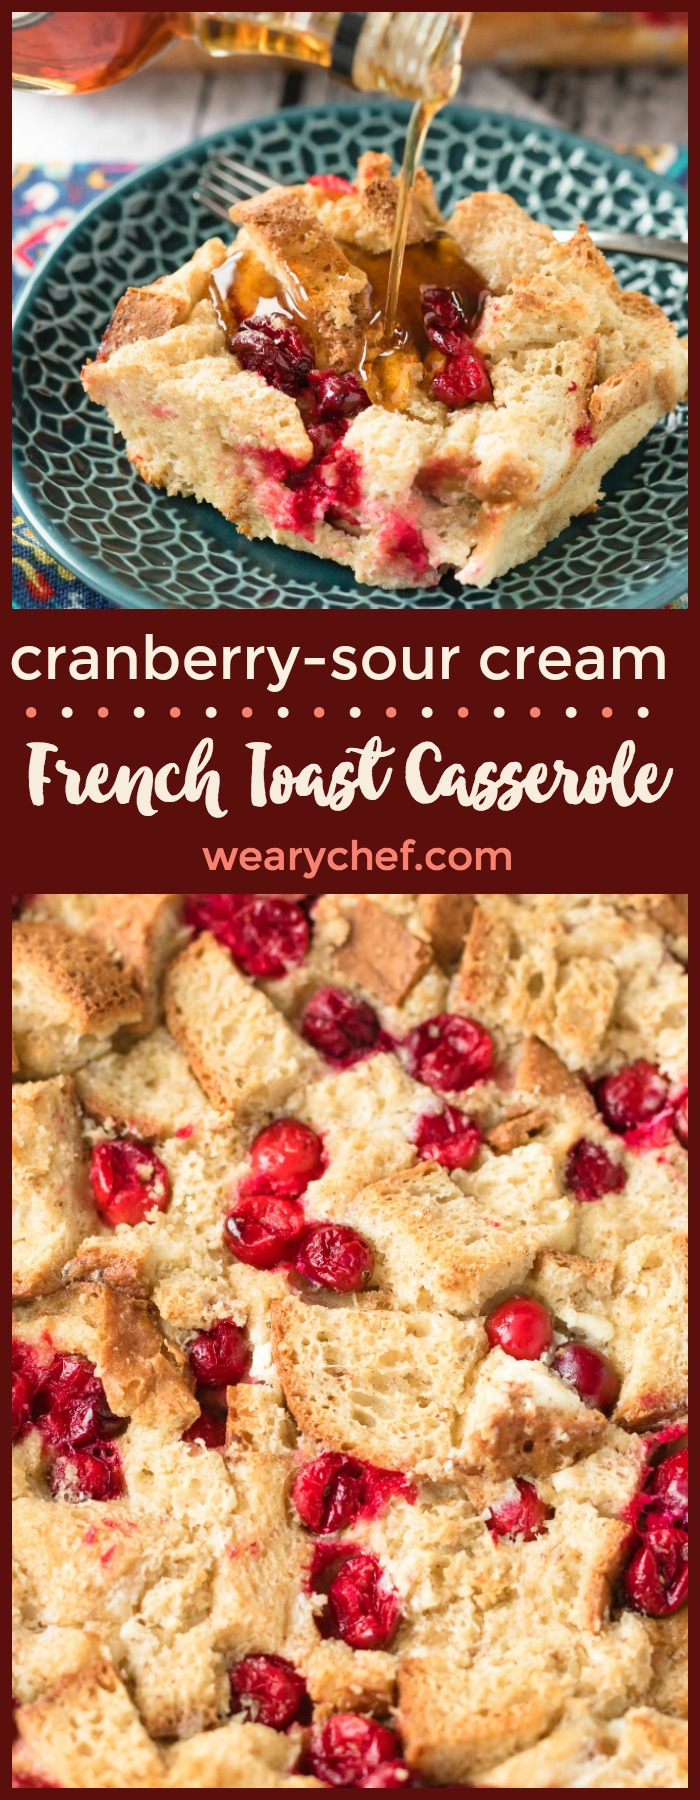 Your weekend and holiday mornings just got even better thanks to this Sour Cream Cranberry French Toast Casserole! You can also try this breakfast recipe with blueberries, strawberries, or other fruits!